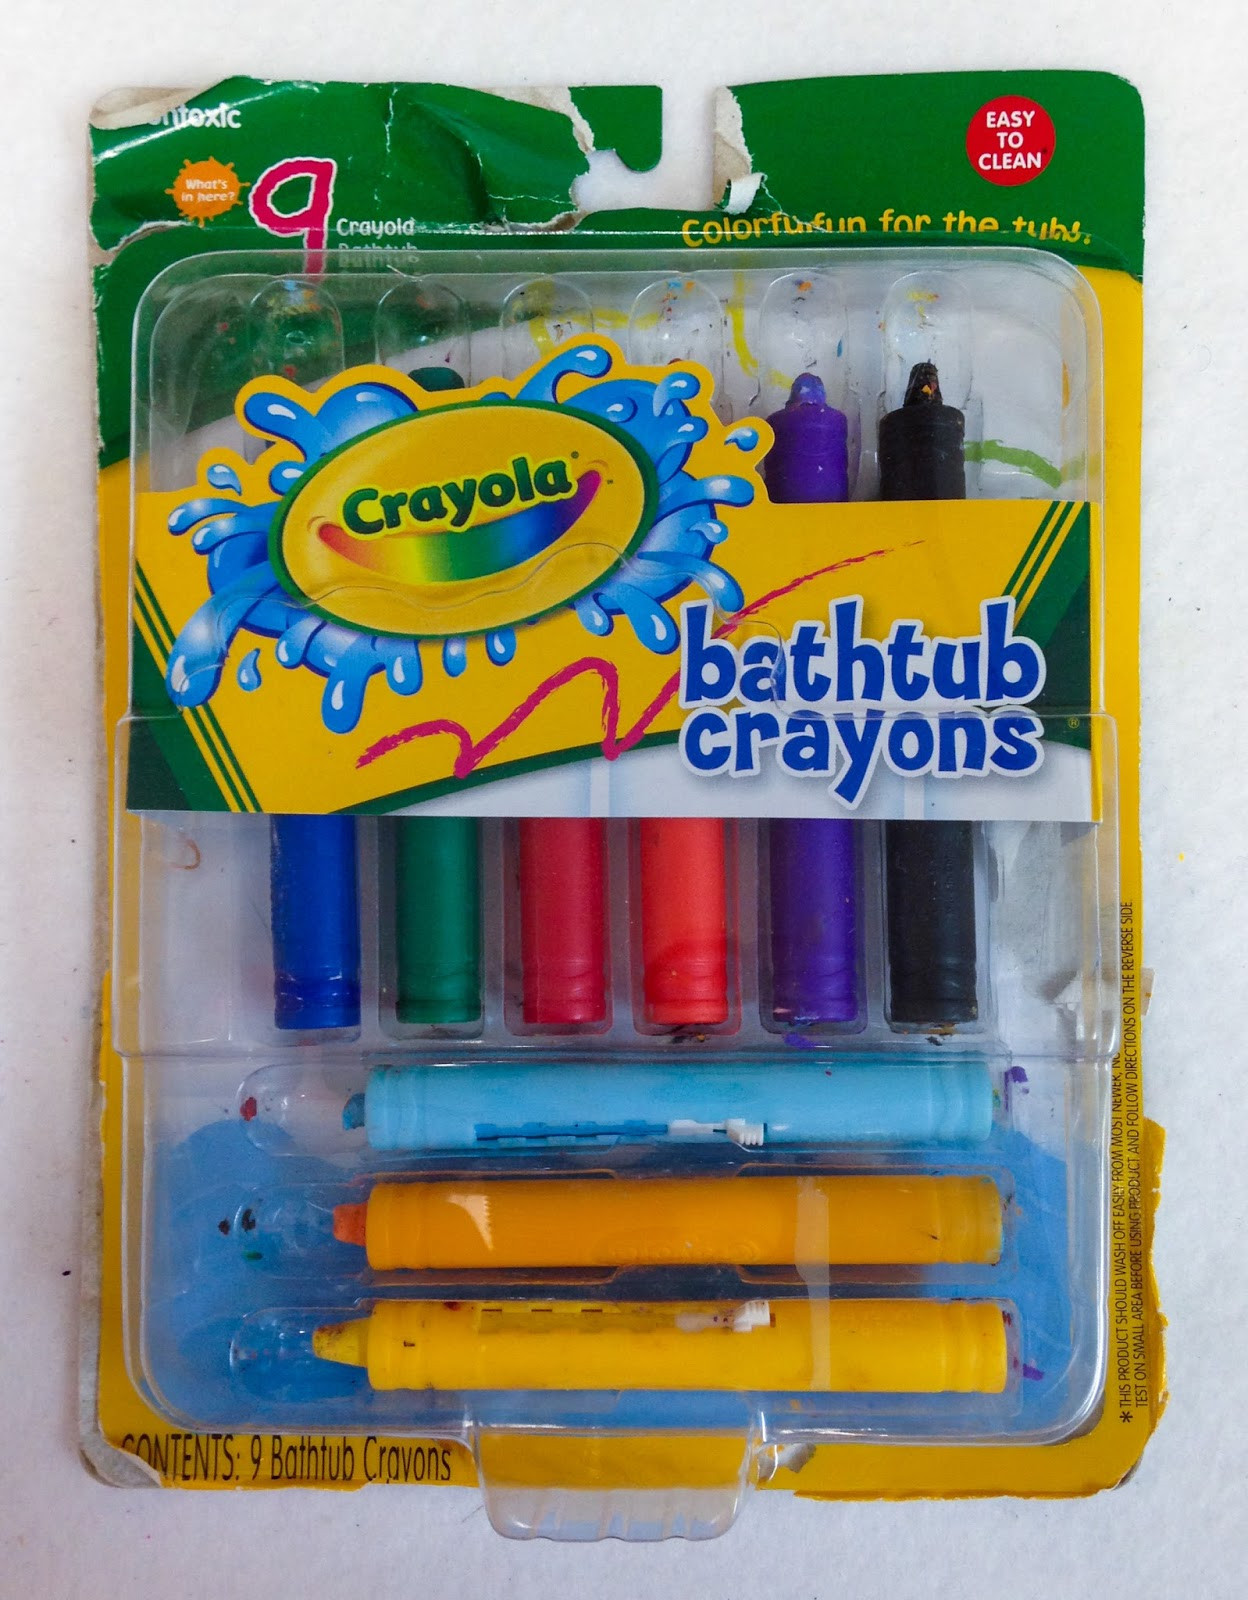 Best ideas about Crayola Bathroom Crayons . Save or Pin Crayola Bathtub Crayons and Markers What s Inside the Box Now.